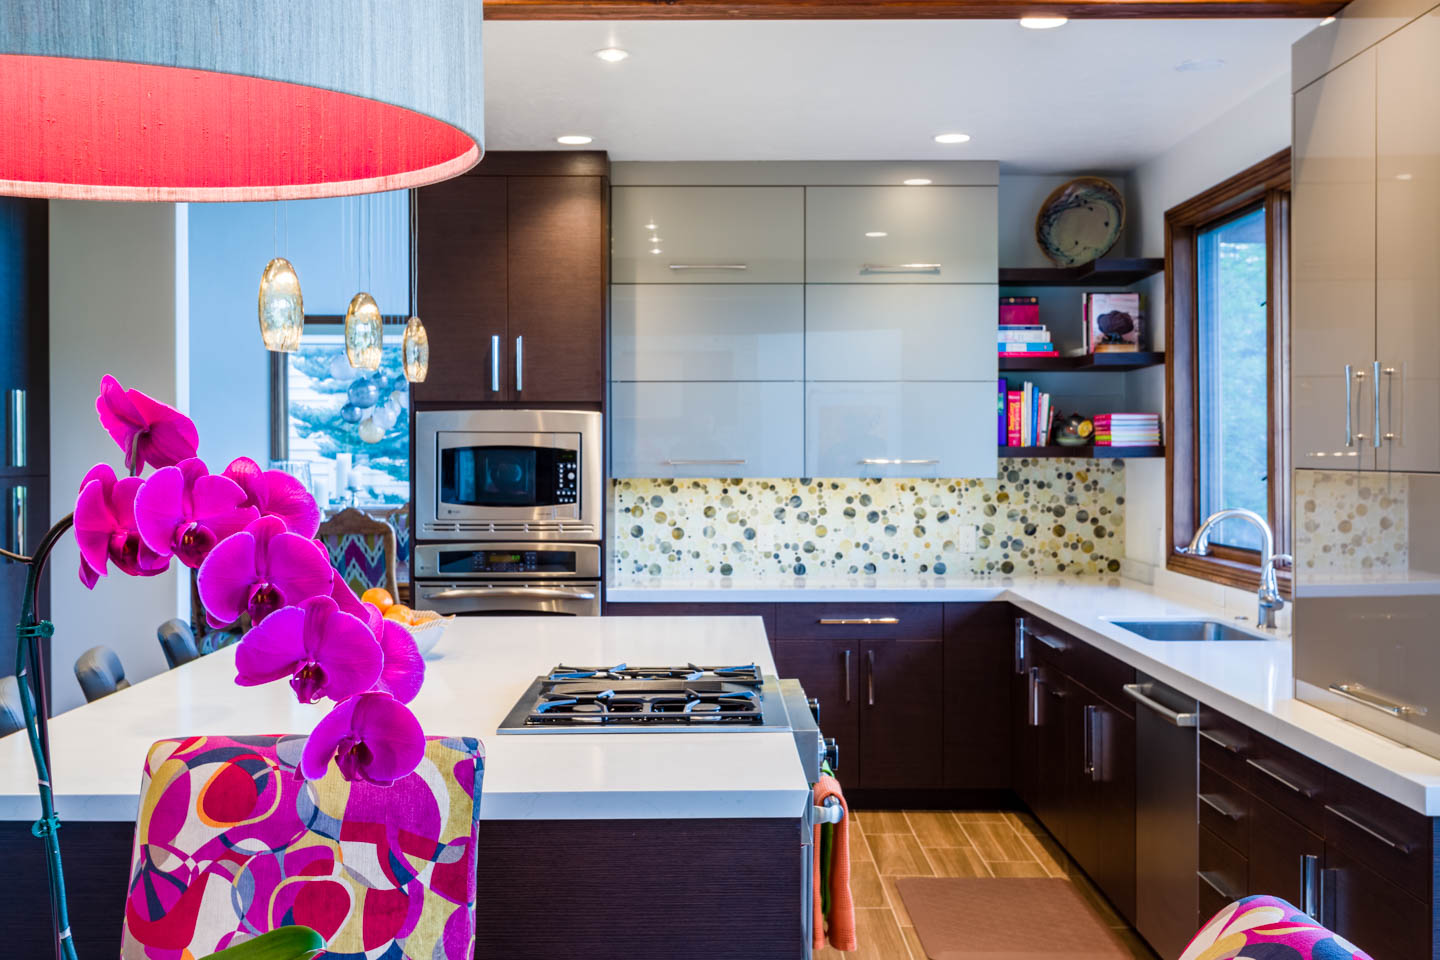 Finding different views of the kitchen